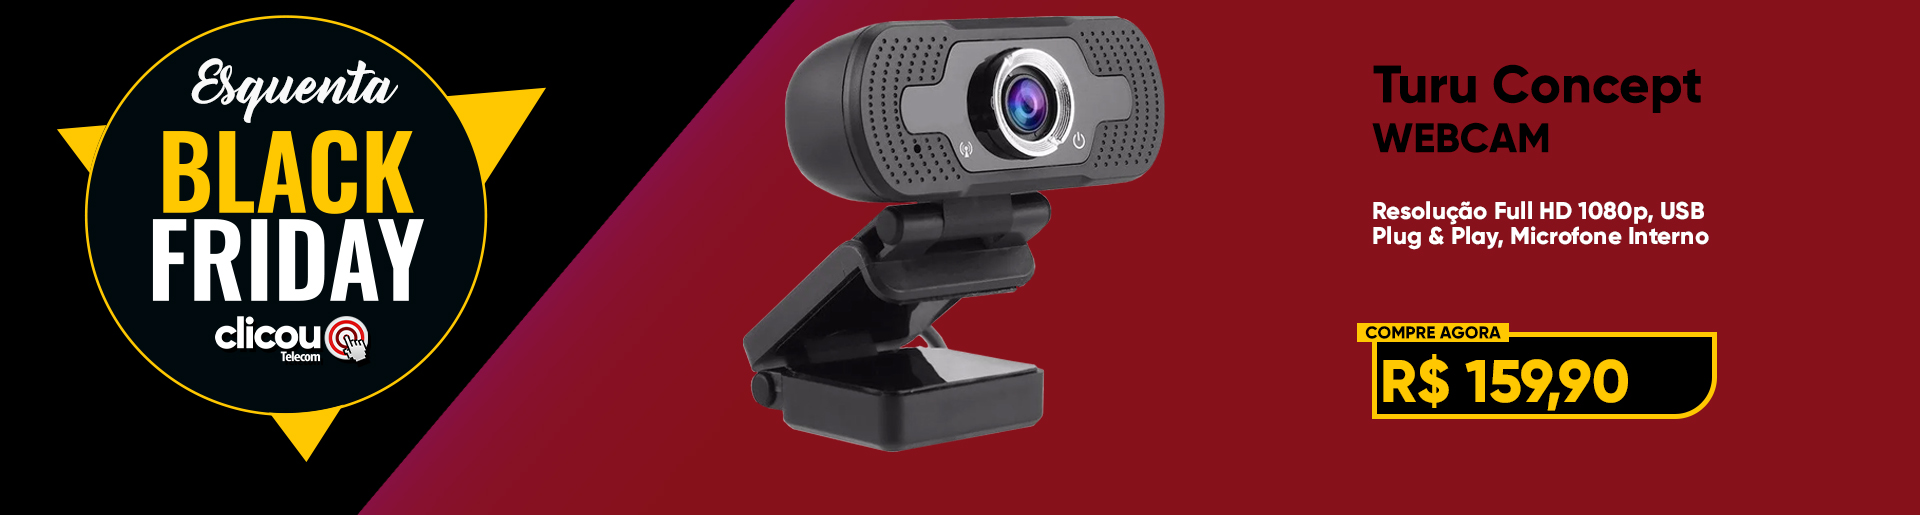 Webcam Turu Concept